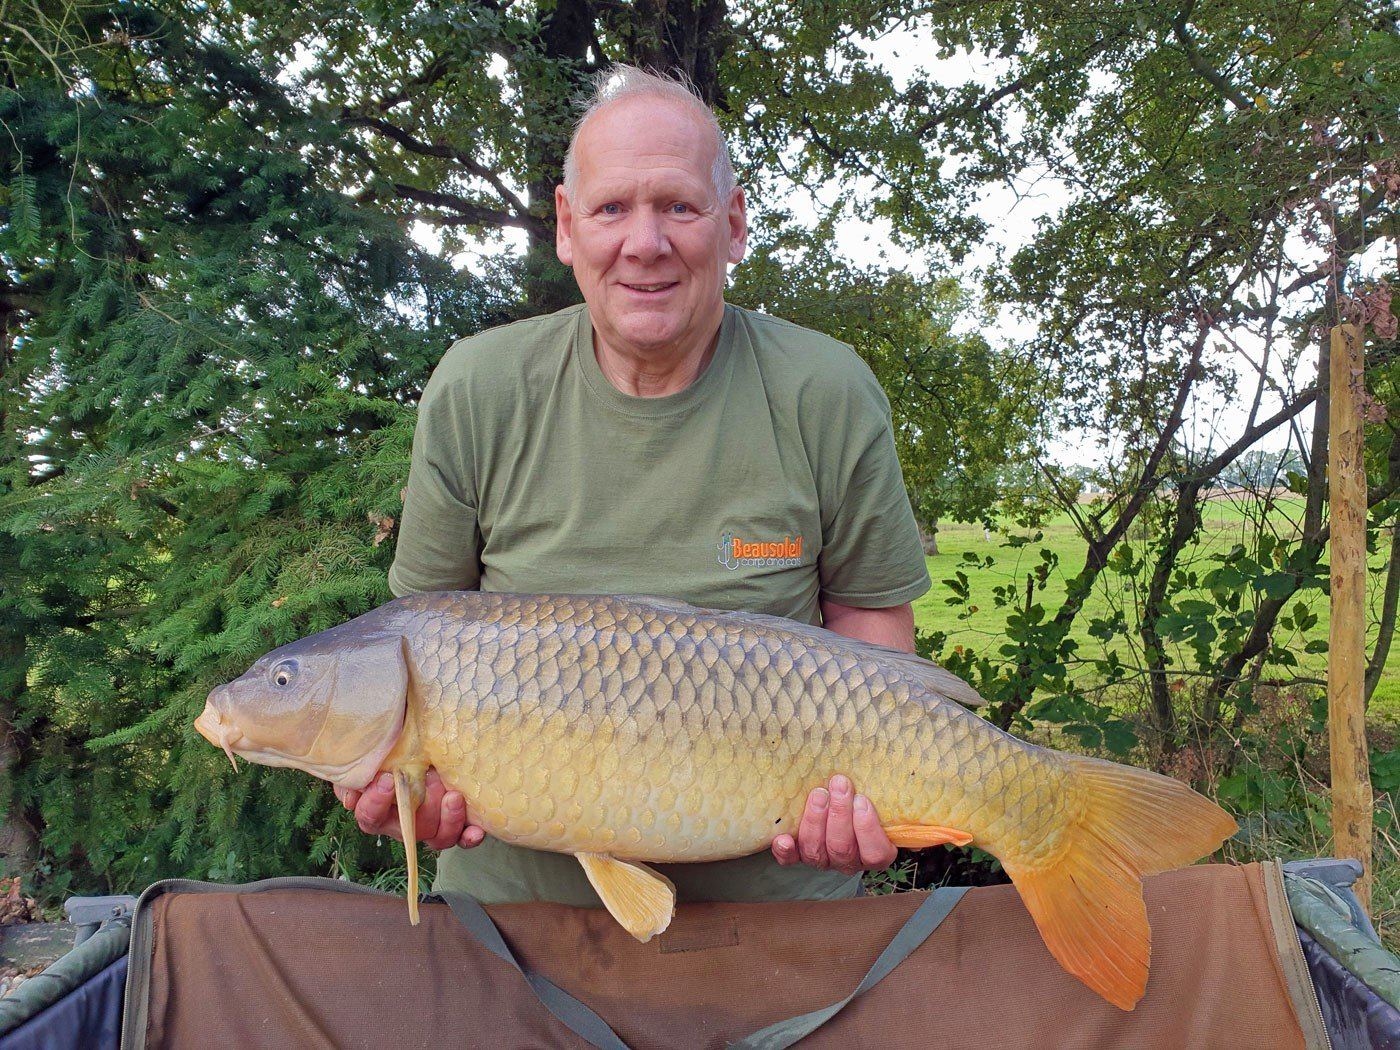 Colin with a 28lb common carp in france